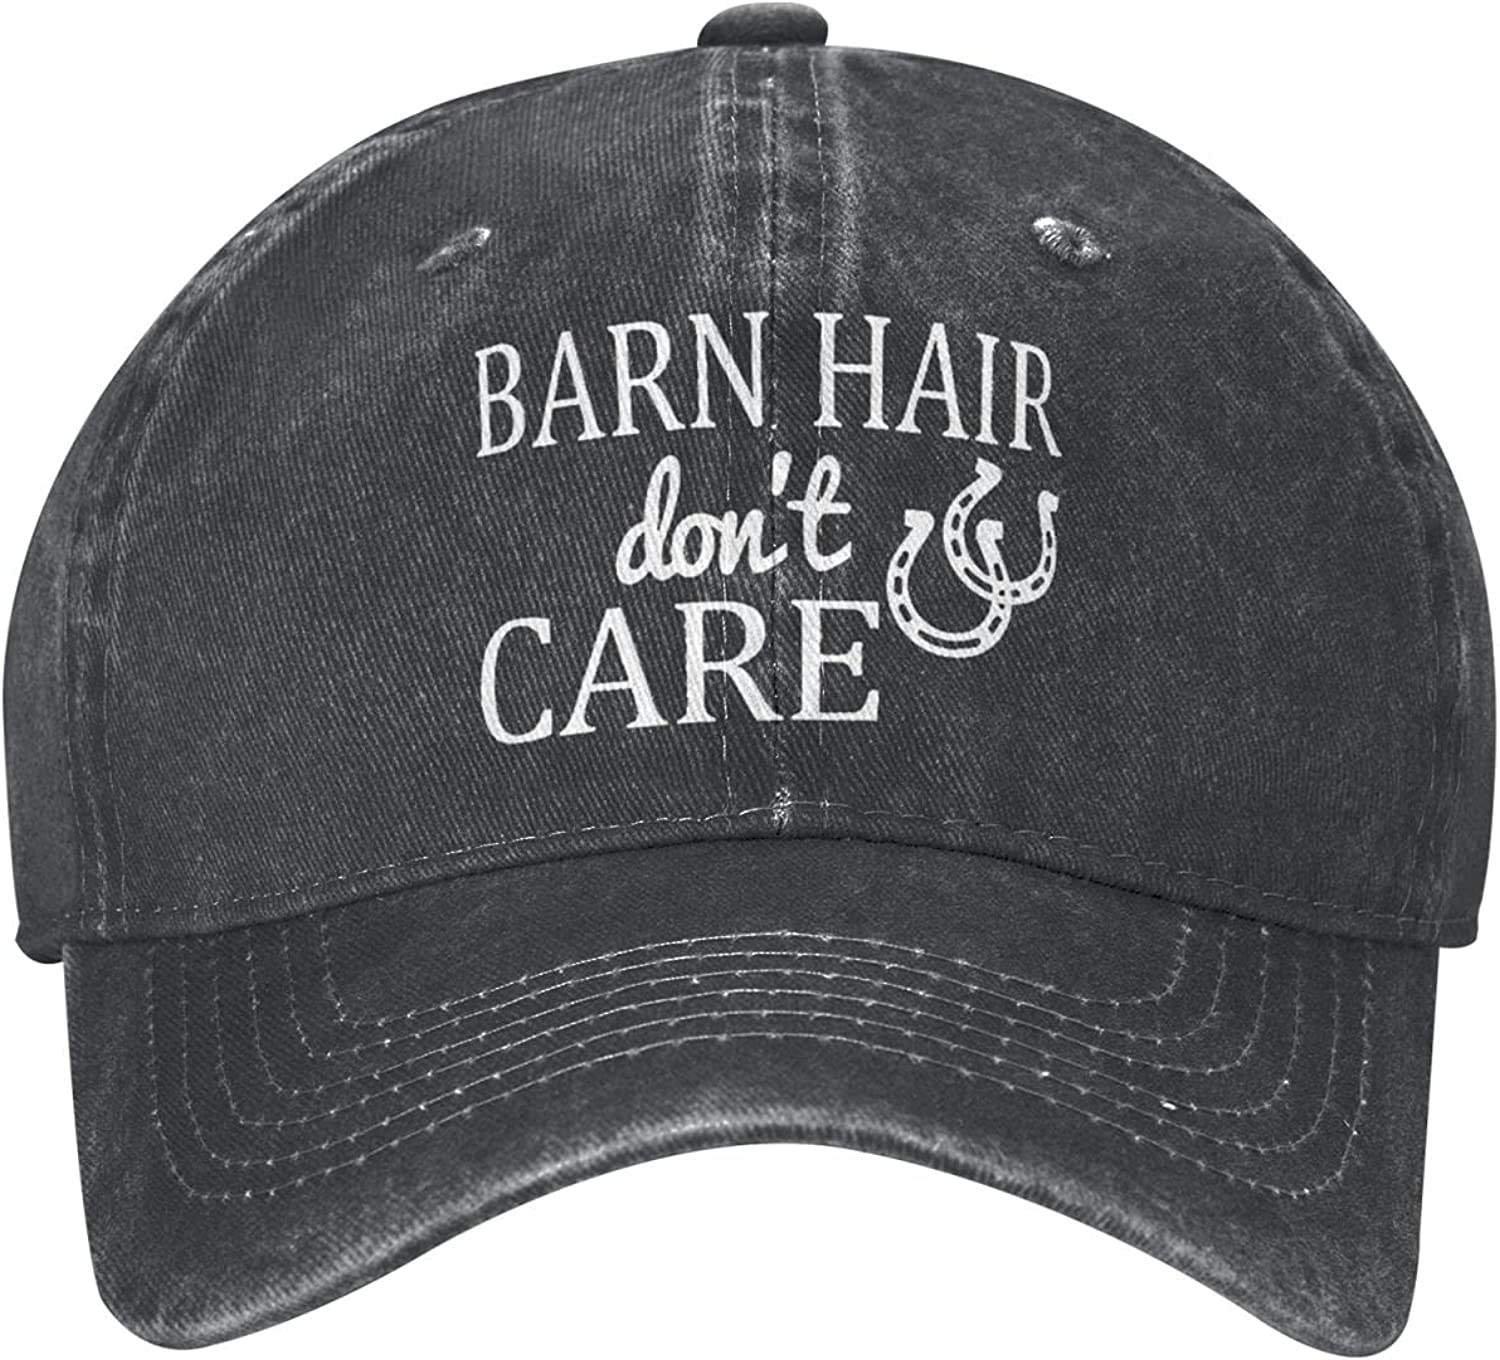 Black Baseball Caps for Women and Men, Adjustable Vintage Jeans Cotton Dad Hat for Hiking Running Beach